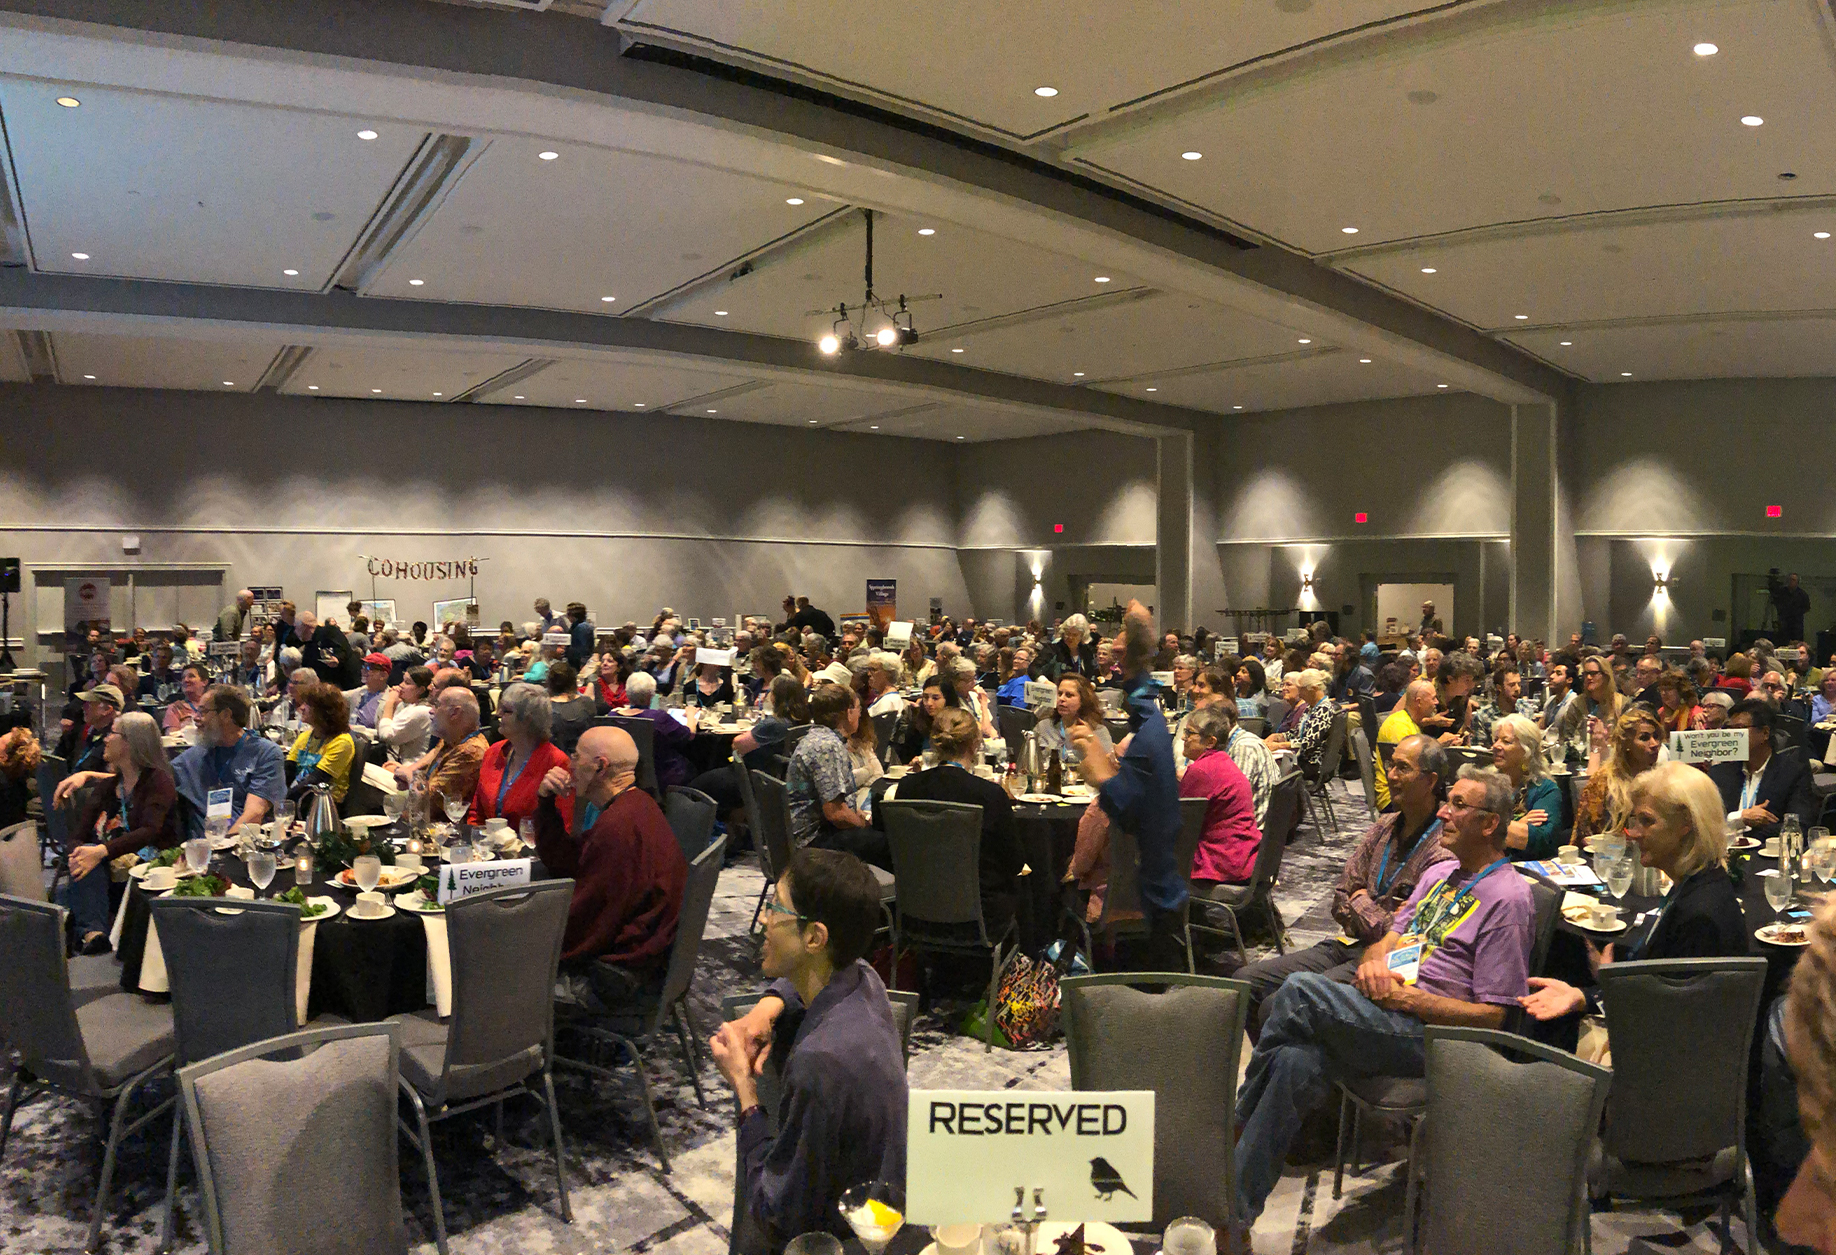 The main hall at the 2019 Cohousing Conference